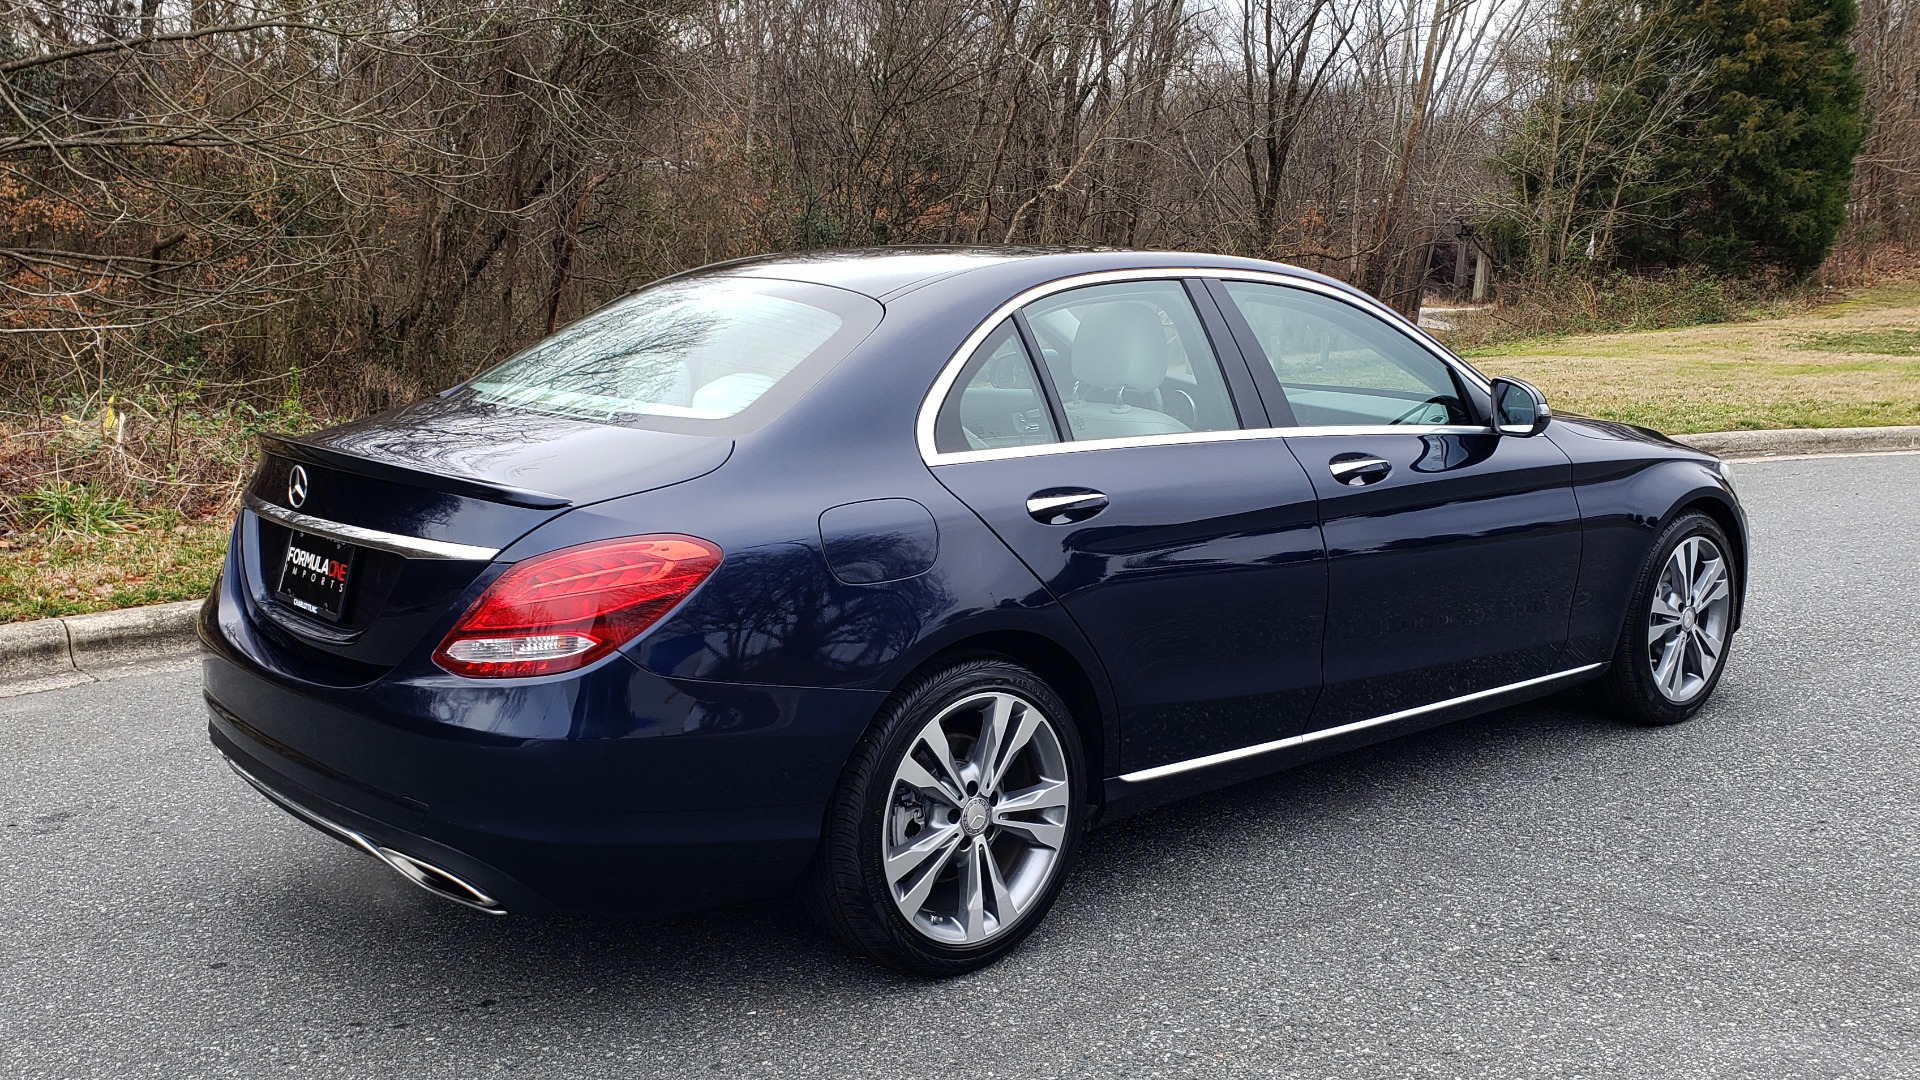 Used 2016 Mercedes-Benz C-CLASS C 300 / PREM PKG / PANO-ROOF / BSA / HTD STS / REARVIEW for sale Sold at Formula Imports in Charlotte NC 28227 6